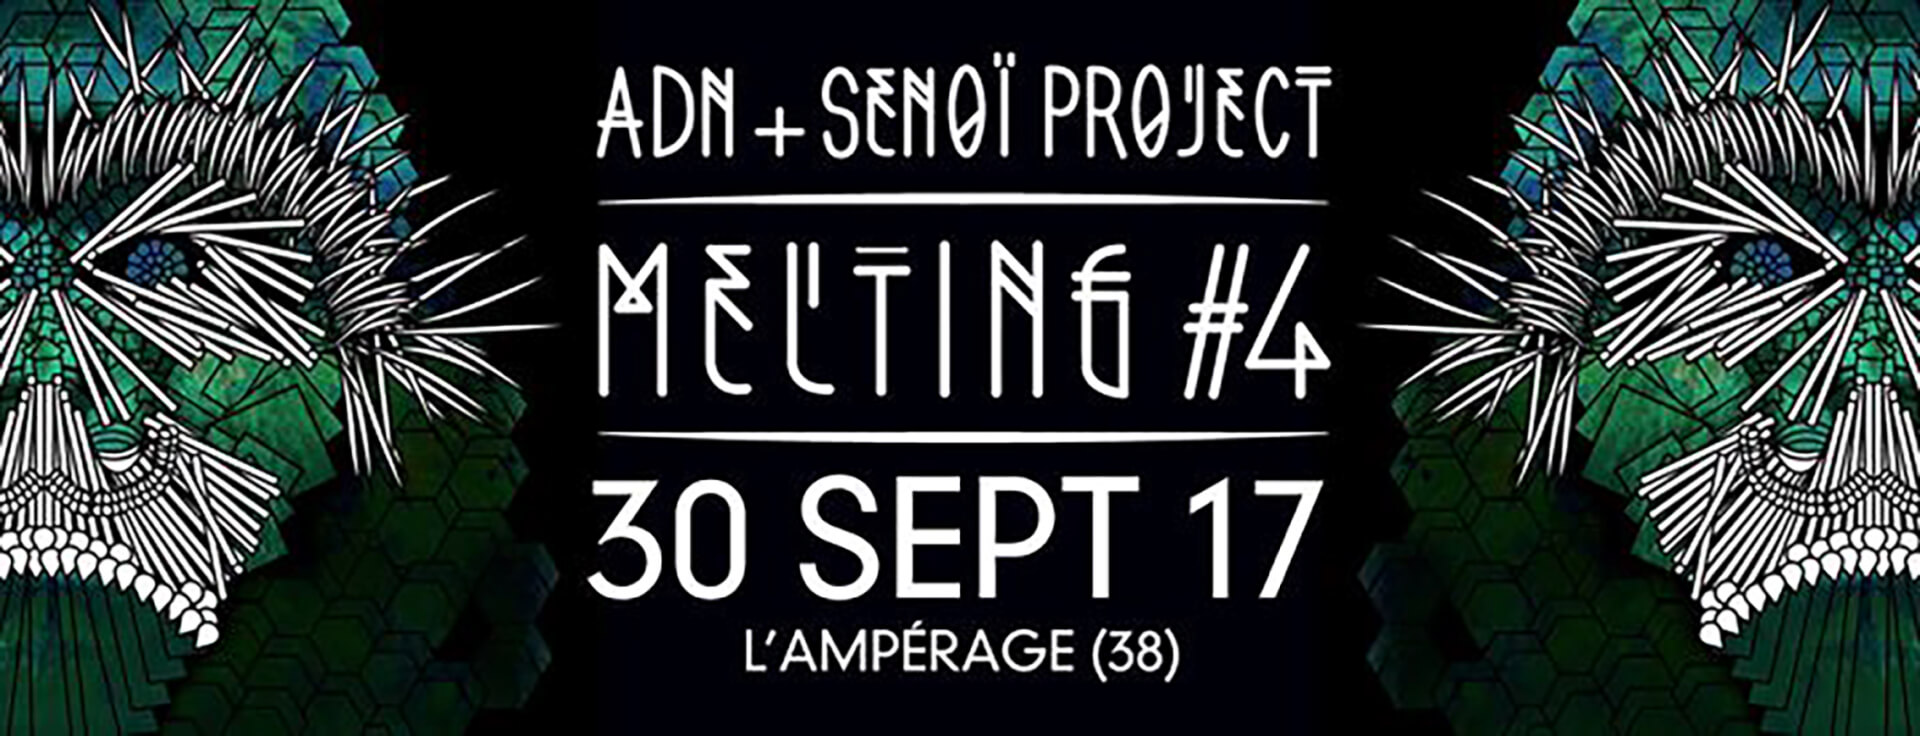 ► MELTING #4 – ADN vs SENOÏ PROJECT SAMEDI 30 SEPTEMBRE 2017 – GRENOBLE (38)